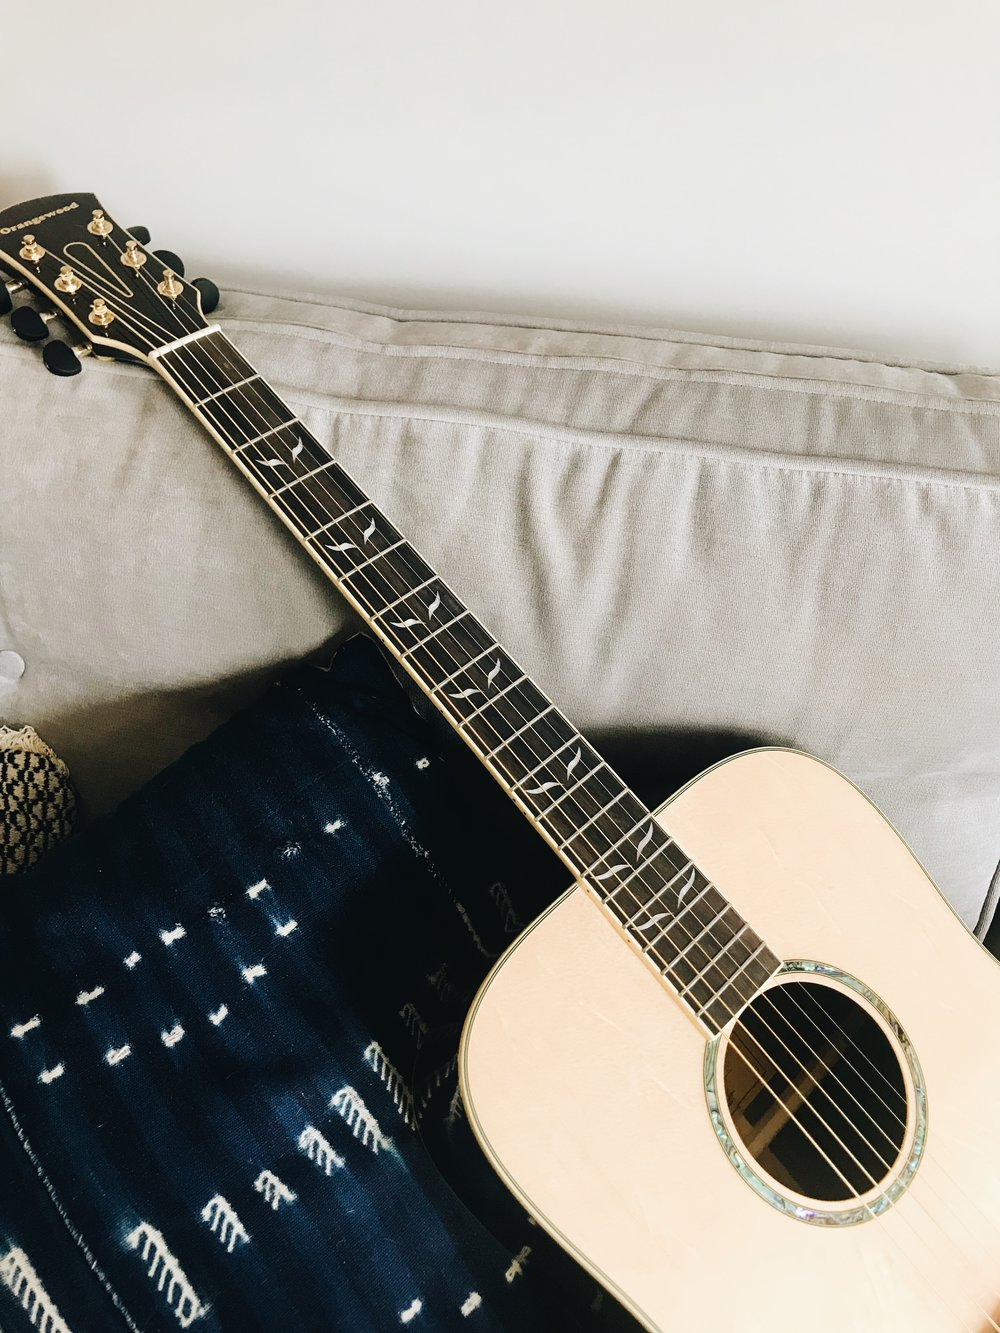 Check out my acoustic booster course! - Encouraging lessons to boost your acoustic guitar skills!